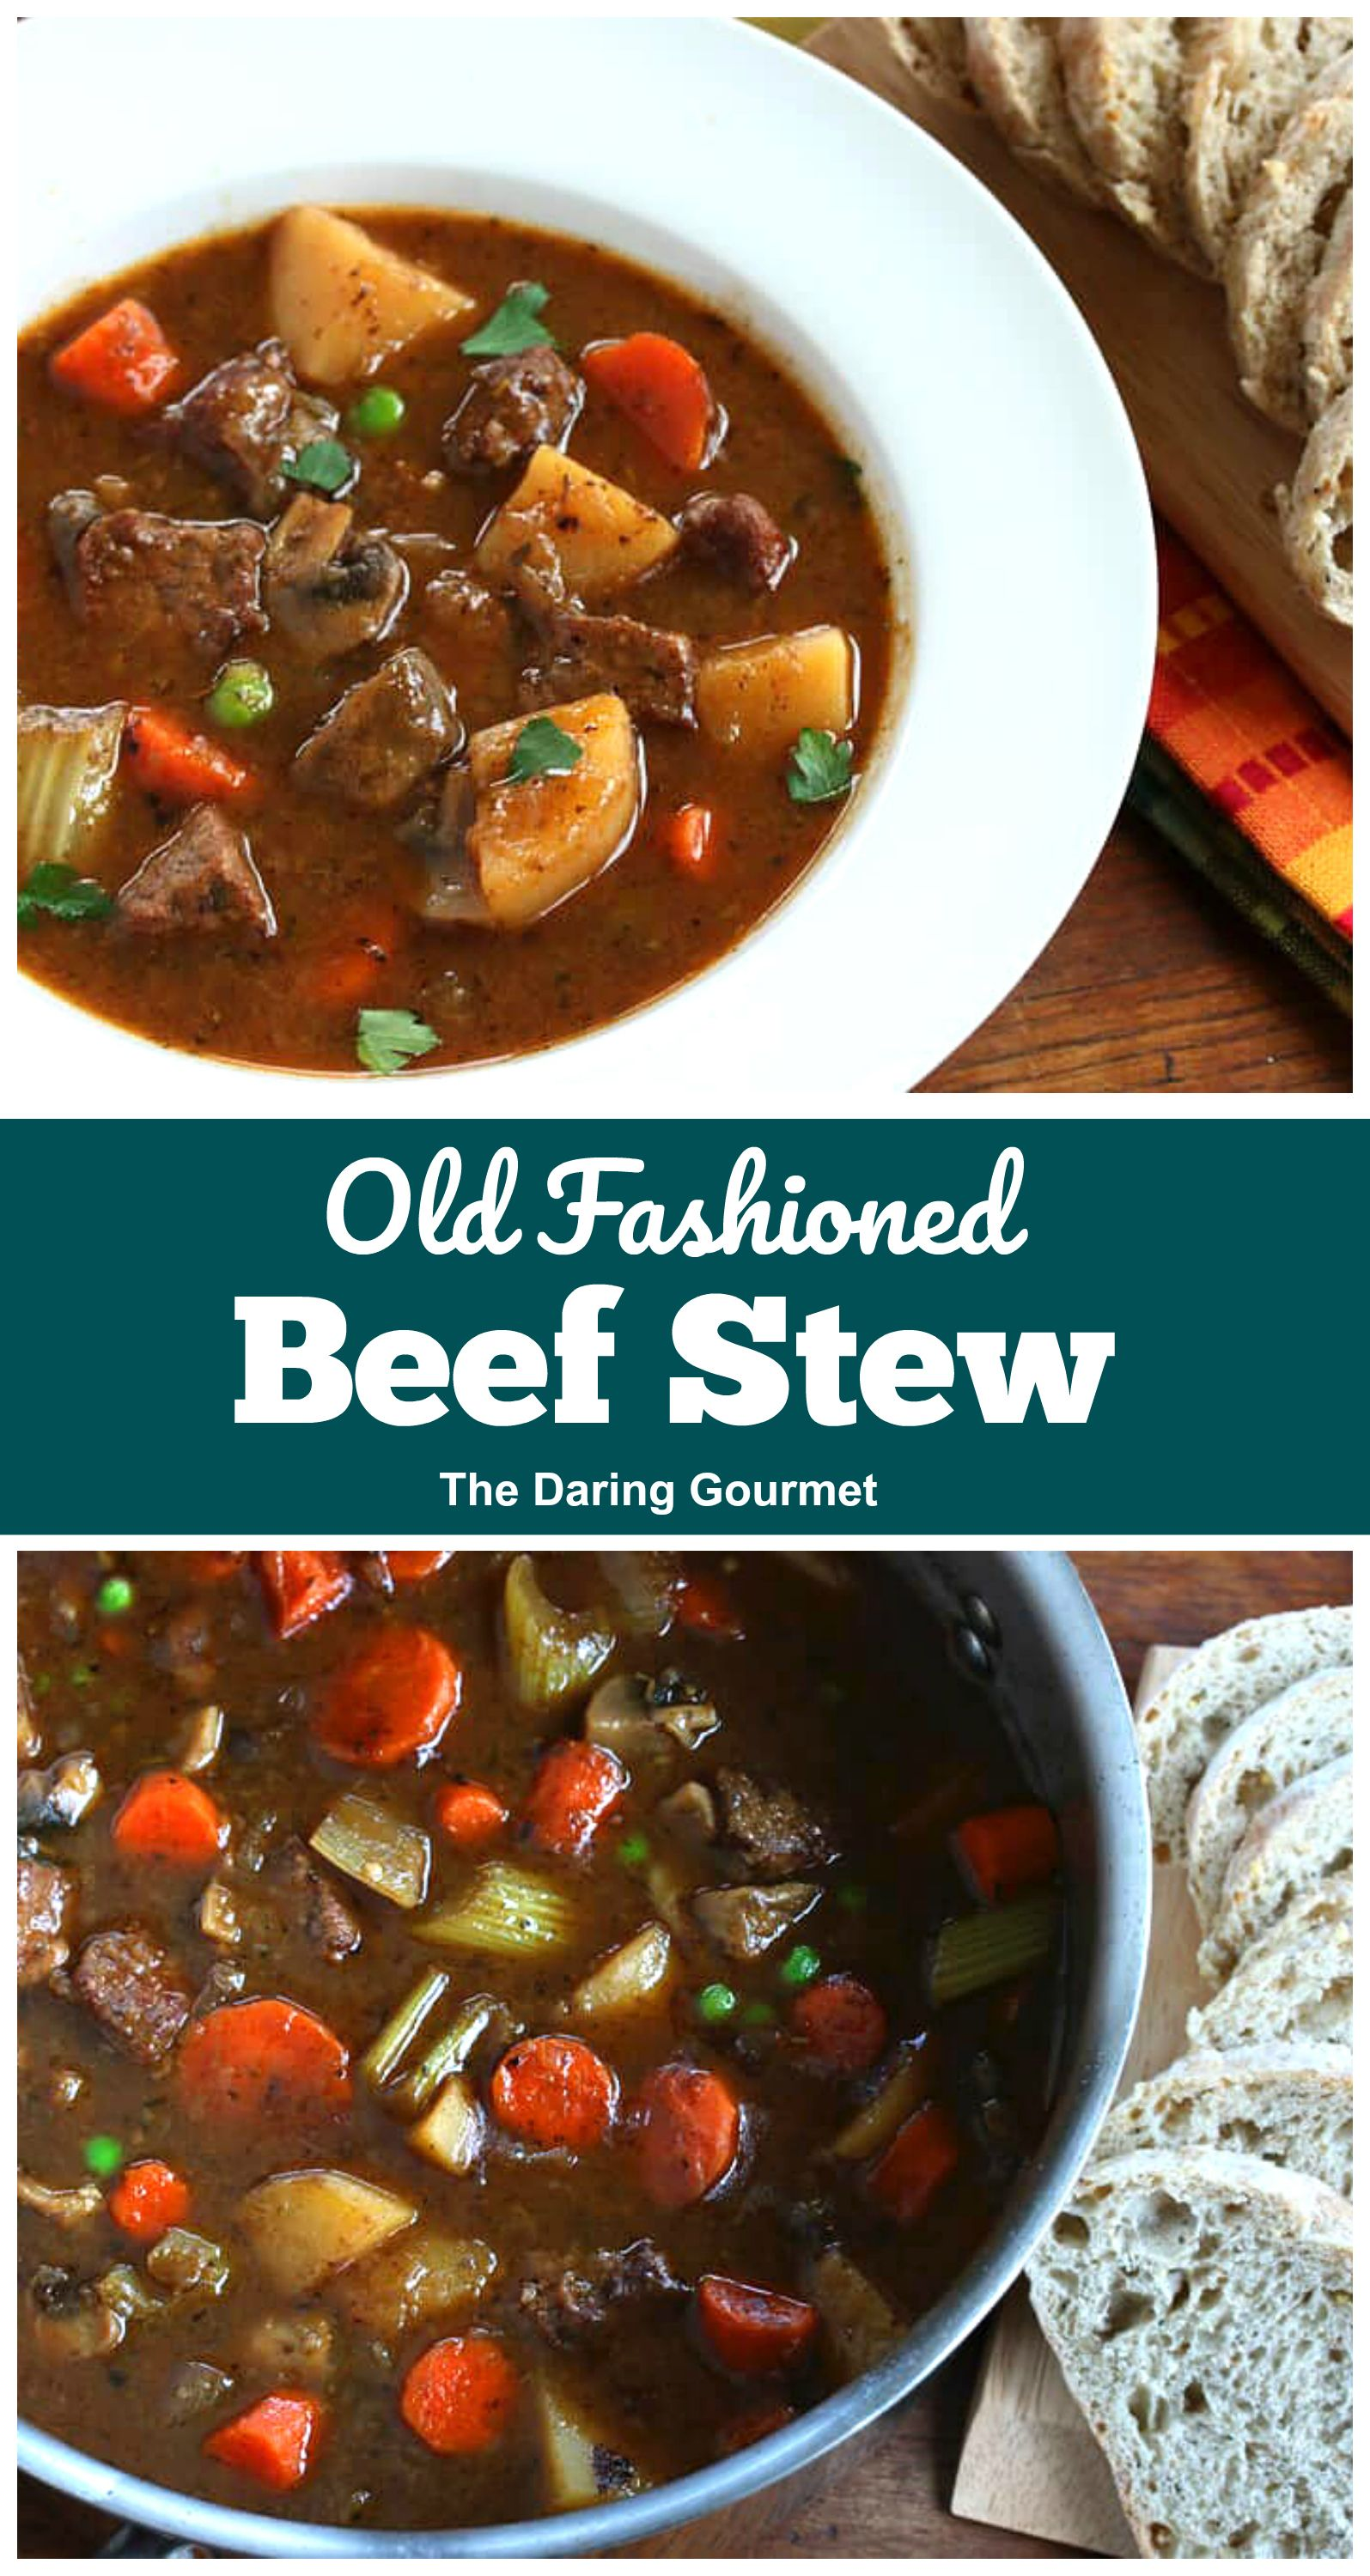 Best Old Fashioned Beef Stew Recipe Old Fashioned Beef Stew Beef Stew Recipe Best Beef Stew Recipe